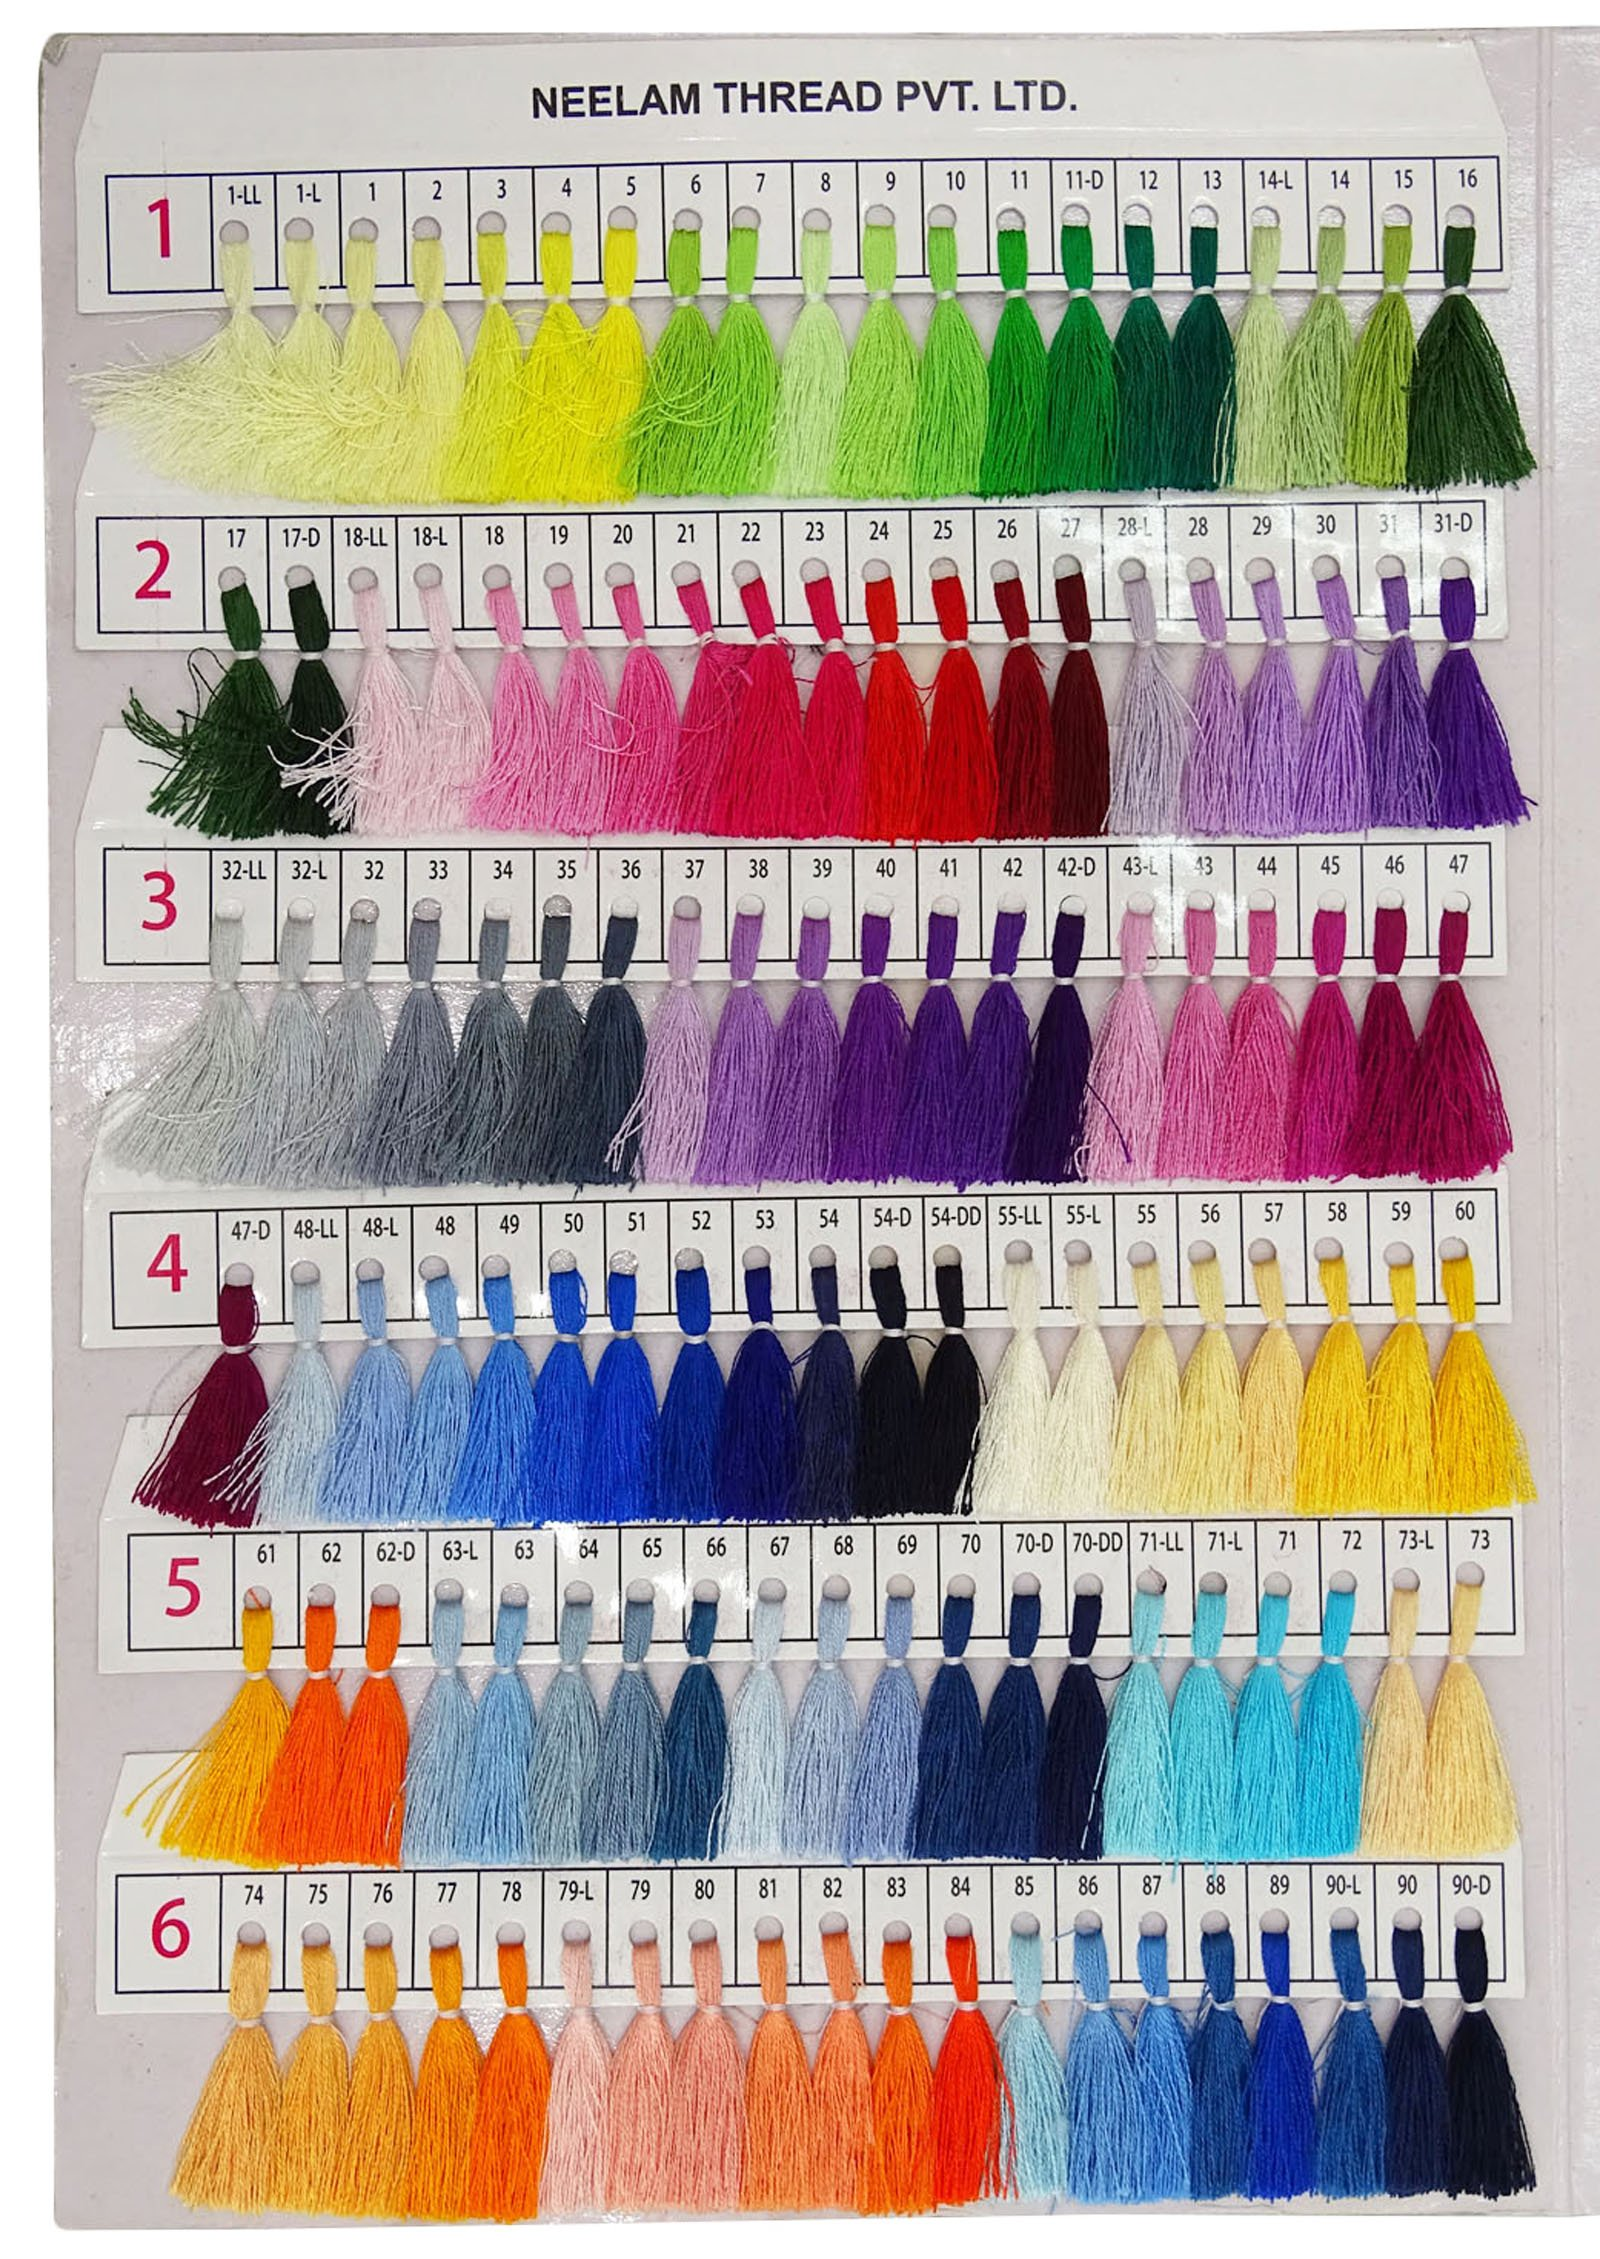 Telephone Threads Azo Free Viscose Rayon Embroidery Thread Shade Card - 480 Color Chart by Telephone Threads (Image #3)